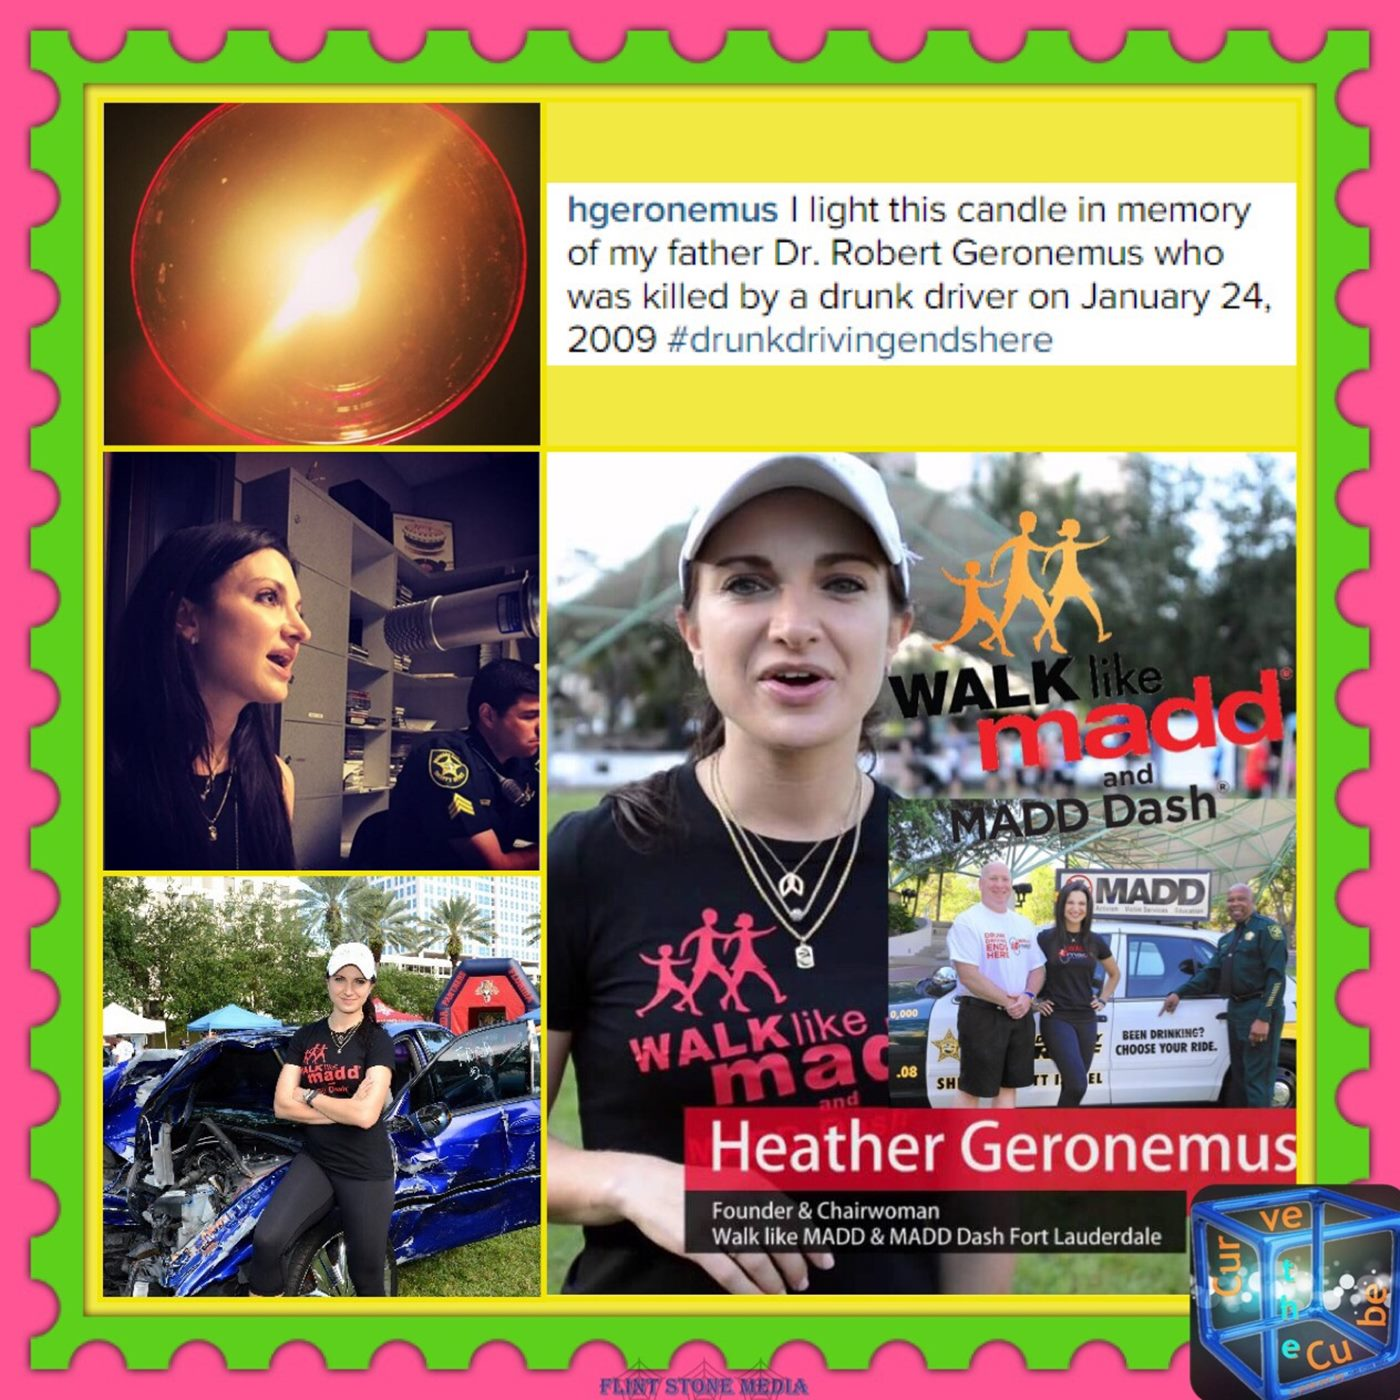 #54 – NON-PROFIT (MADD) – Heather Geronemus - 2015-12-04